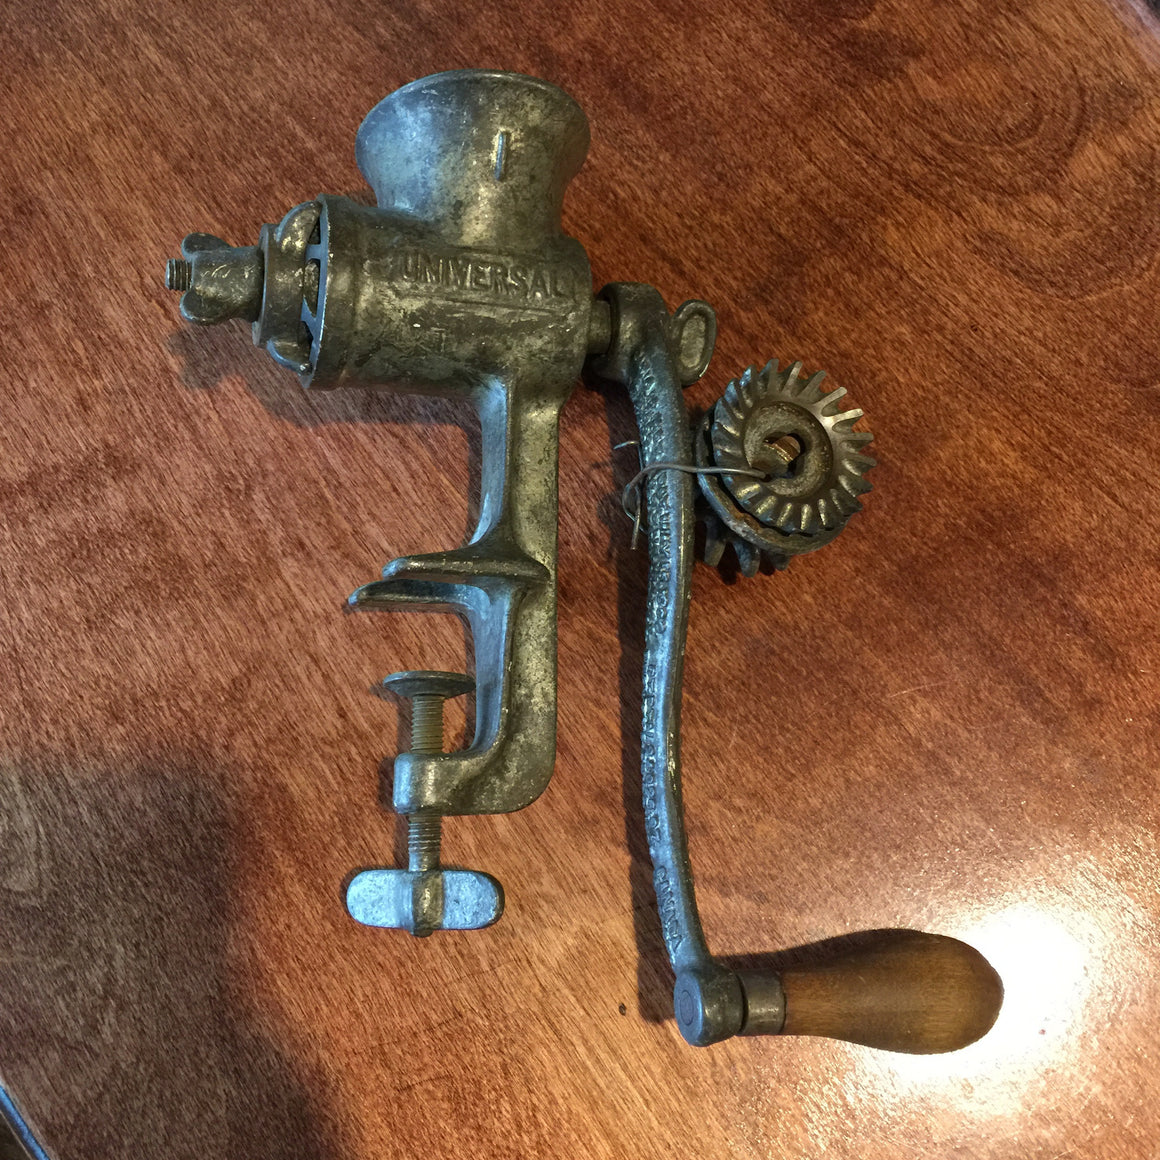 Vintage Universal Meat Grinder w/ additional gears